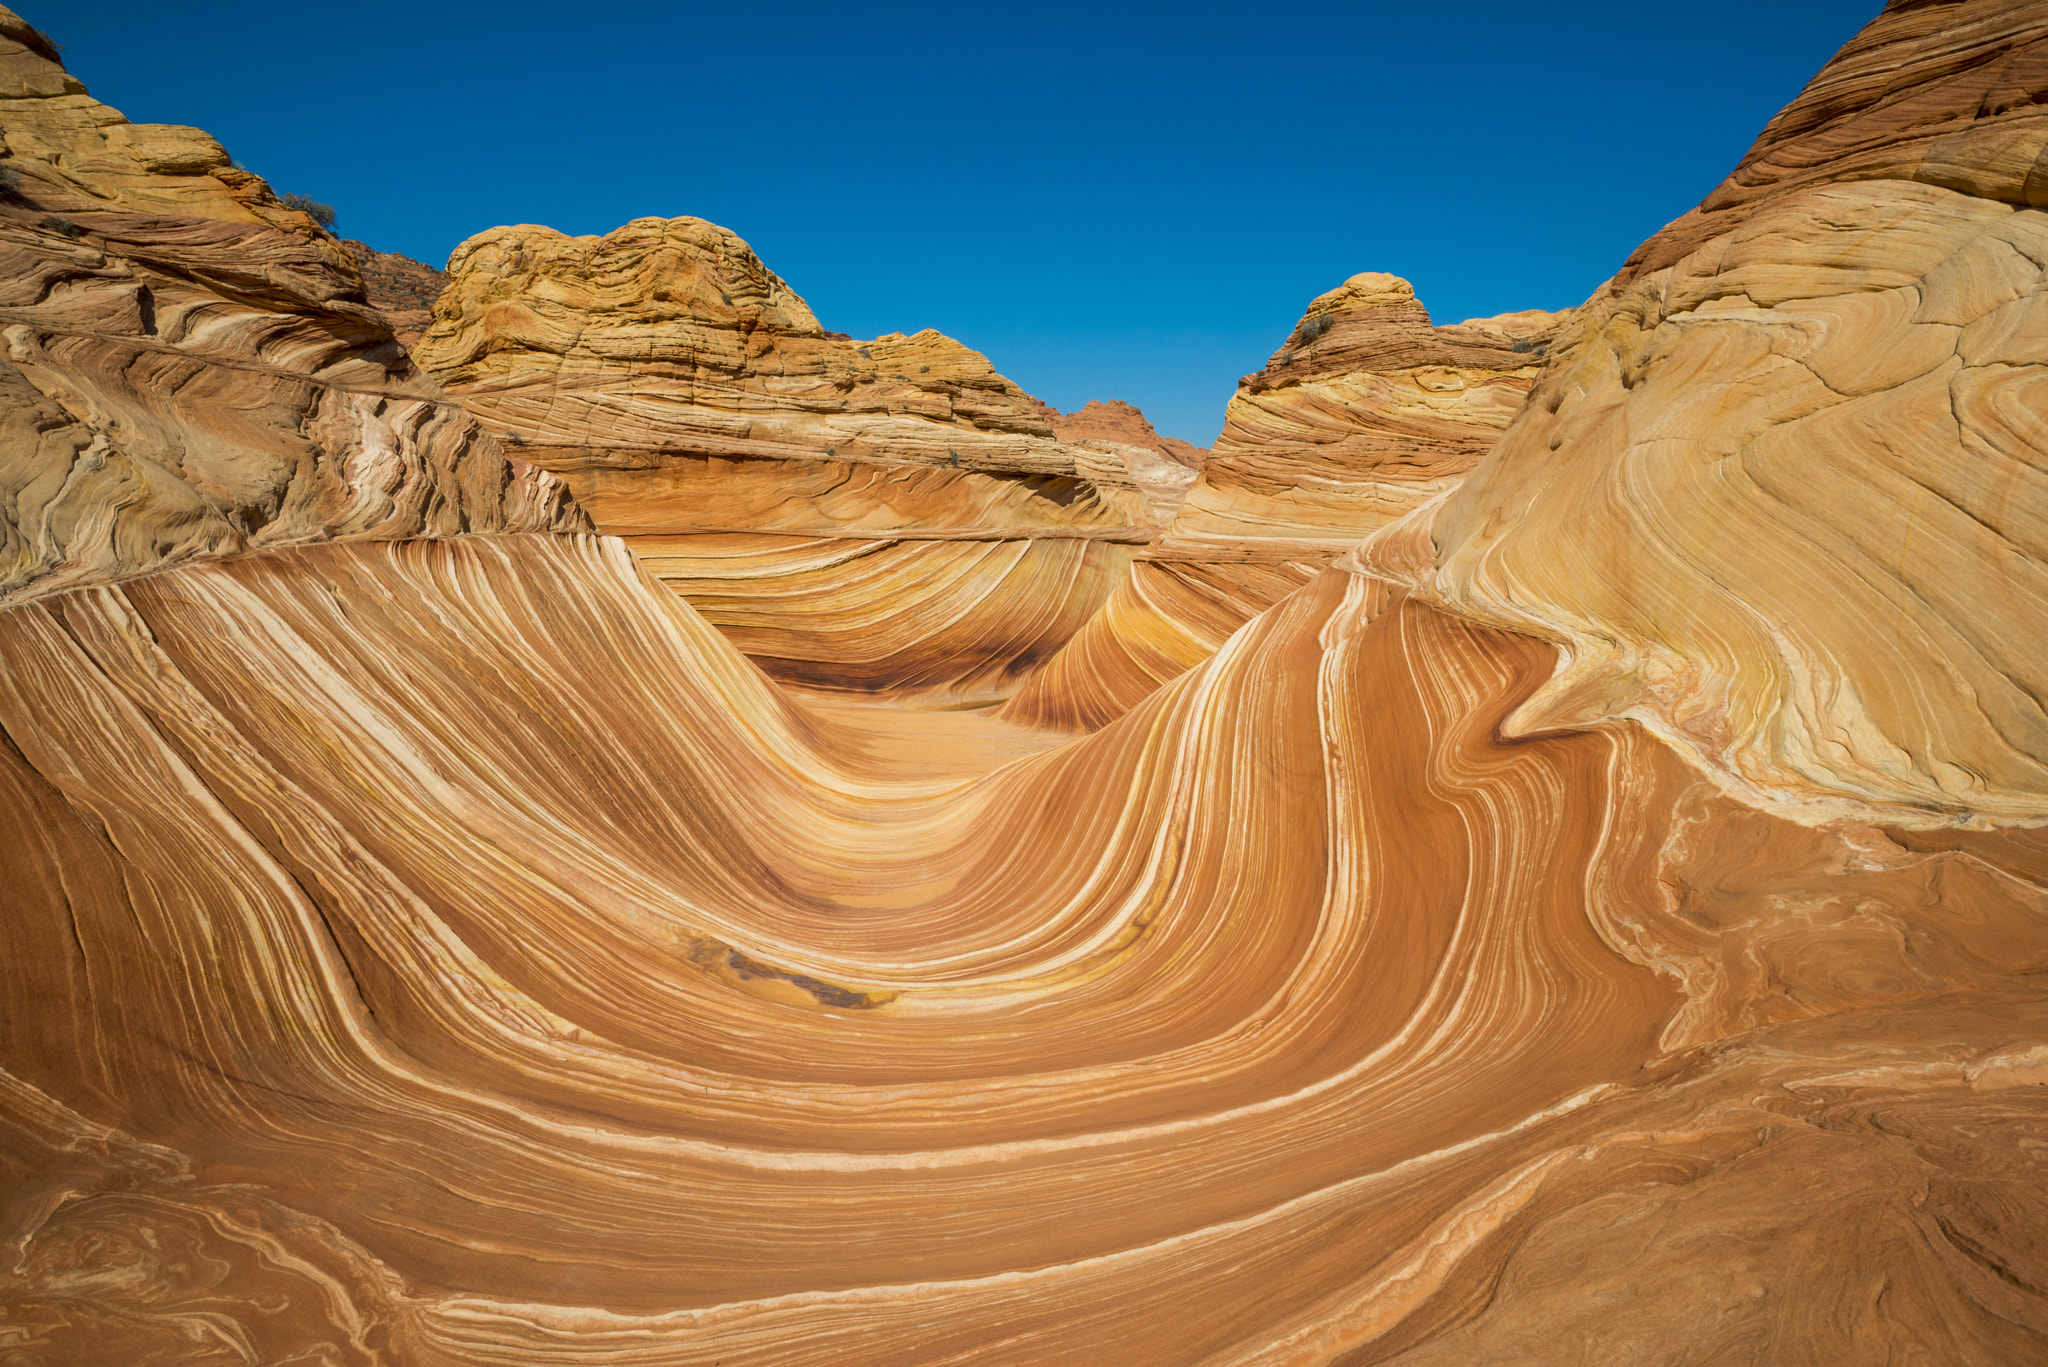 Photograph Wave - Famous rock formation in Pariah Canyon, Utah, Vermillion  by Mike Kolesnikov on 500px